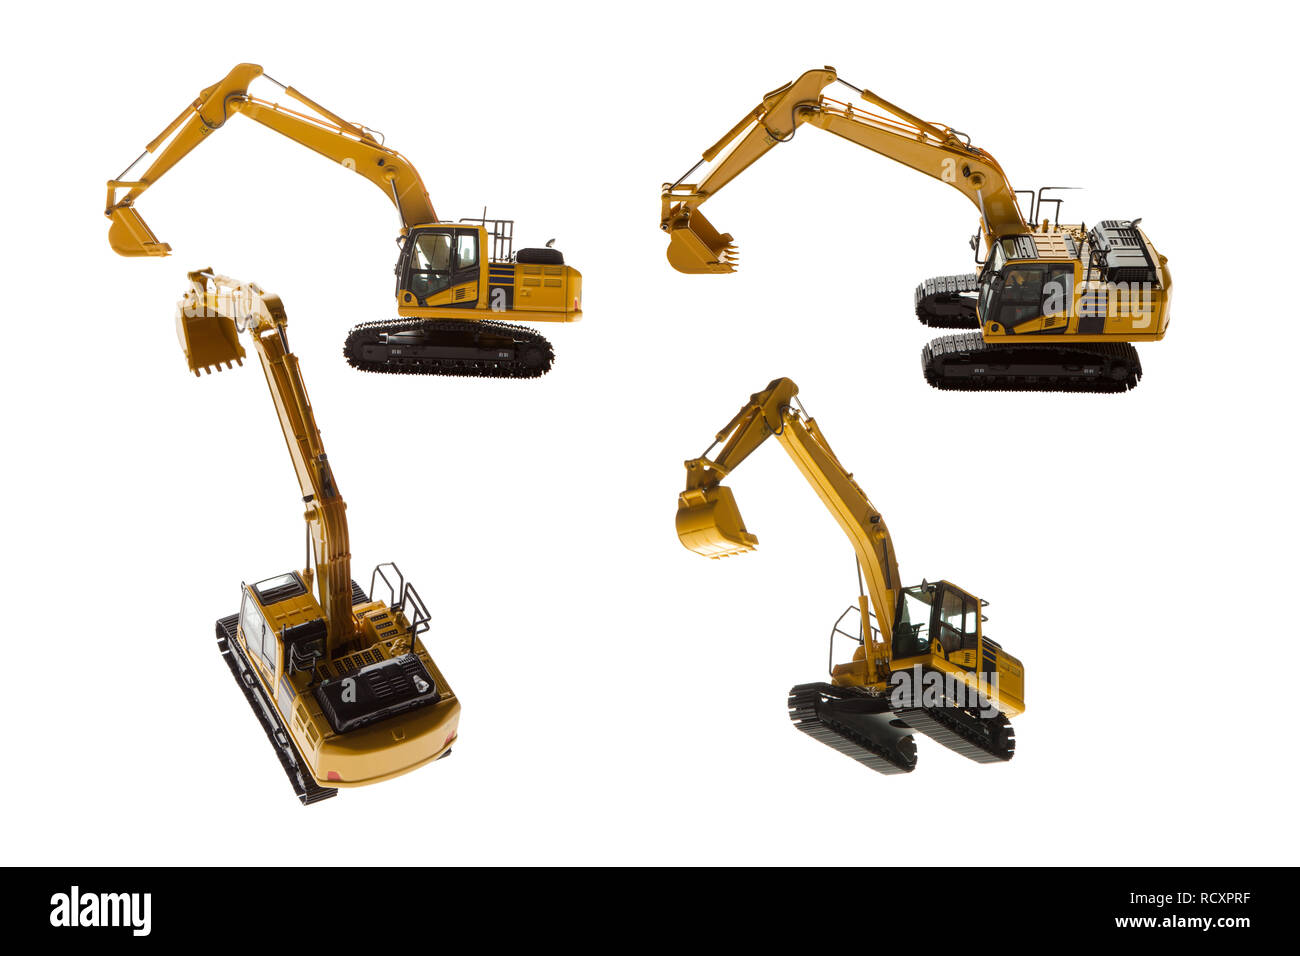 Excavator construction machinery four angles isolated on a white background - Stock Image